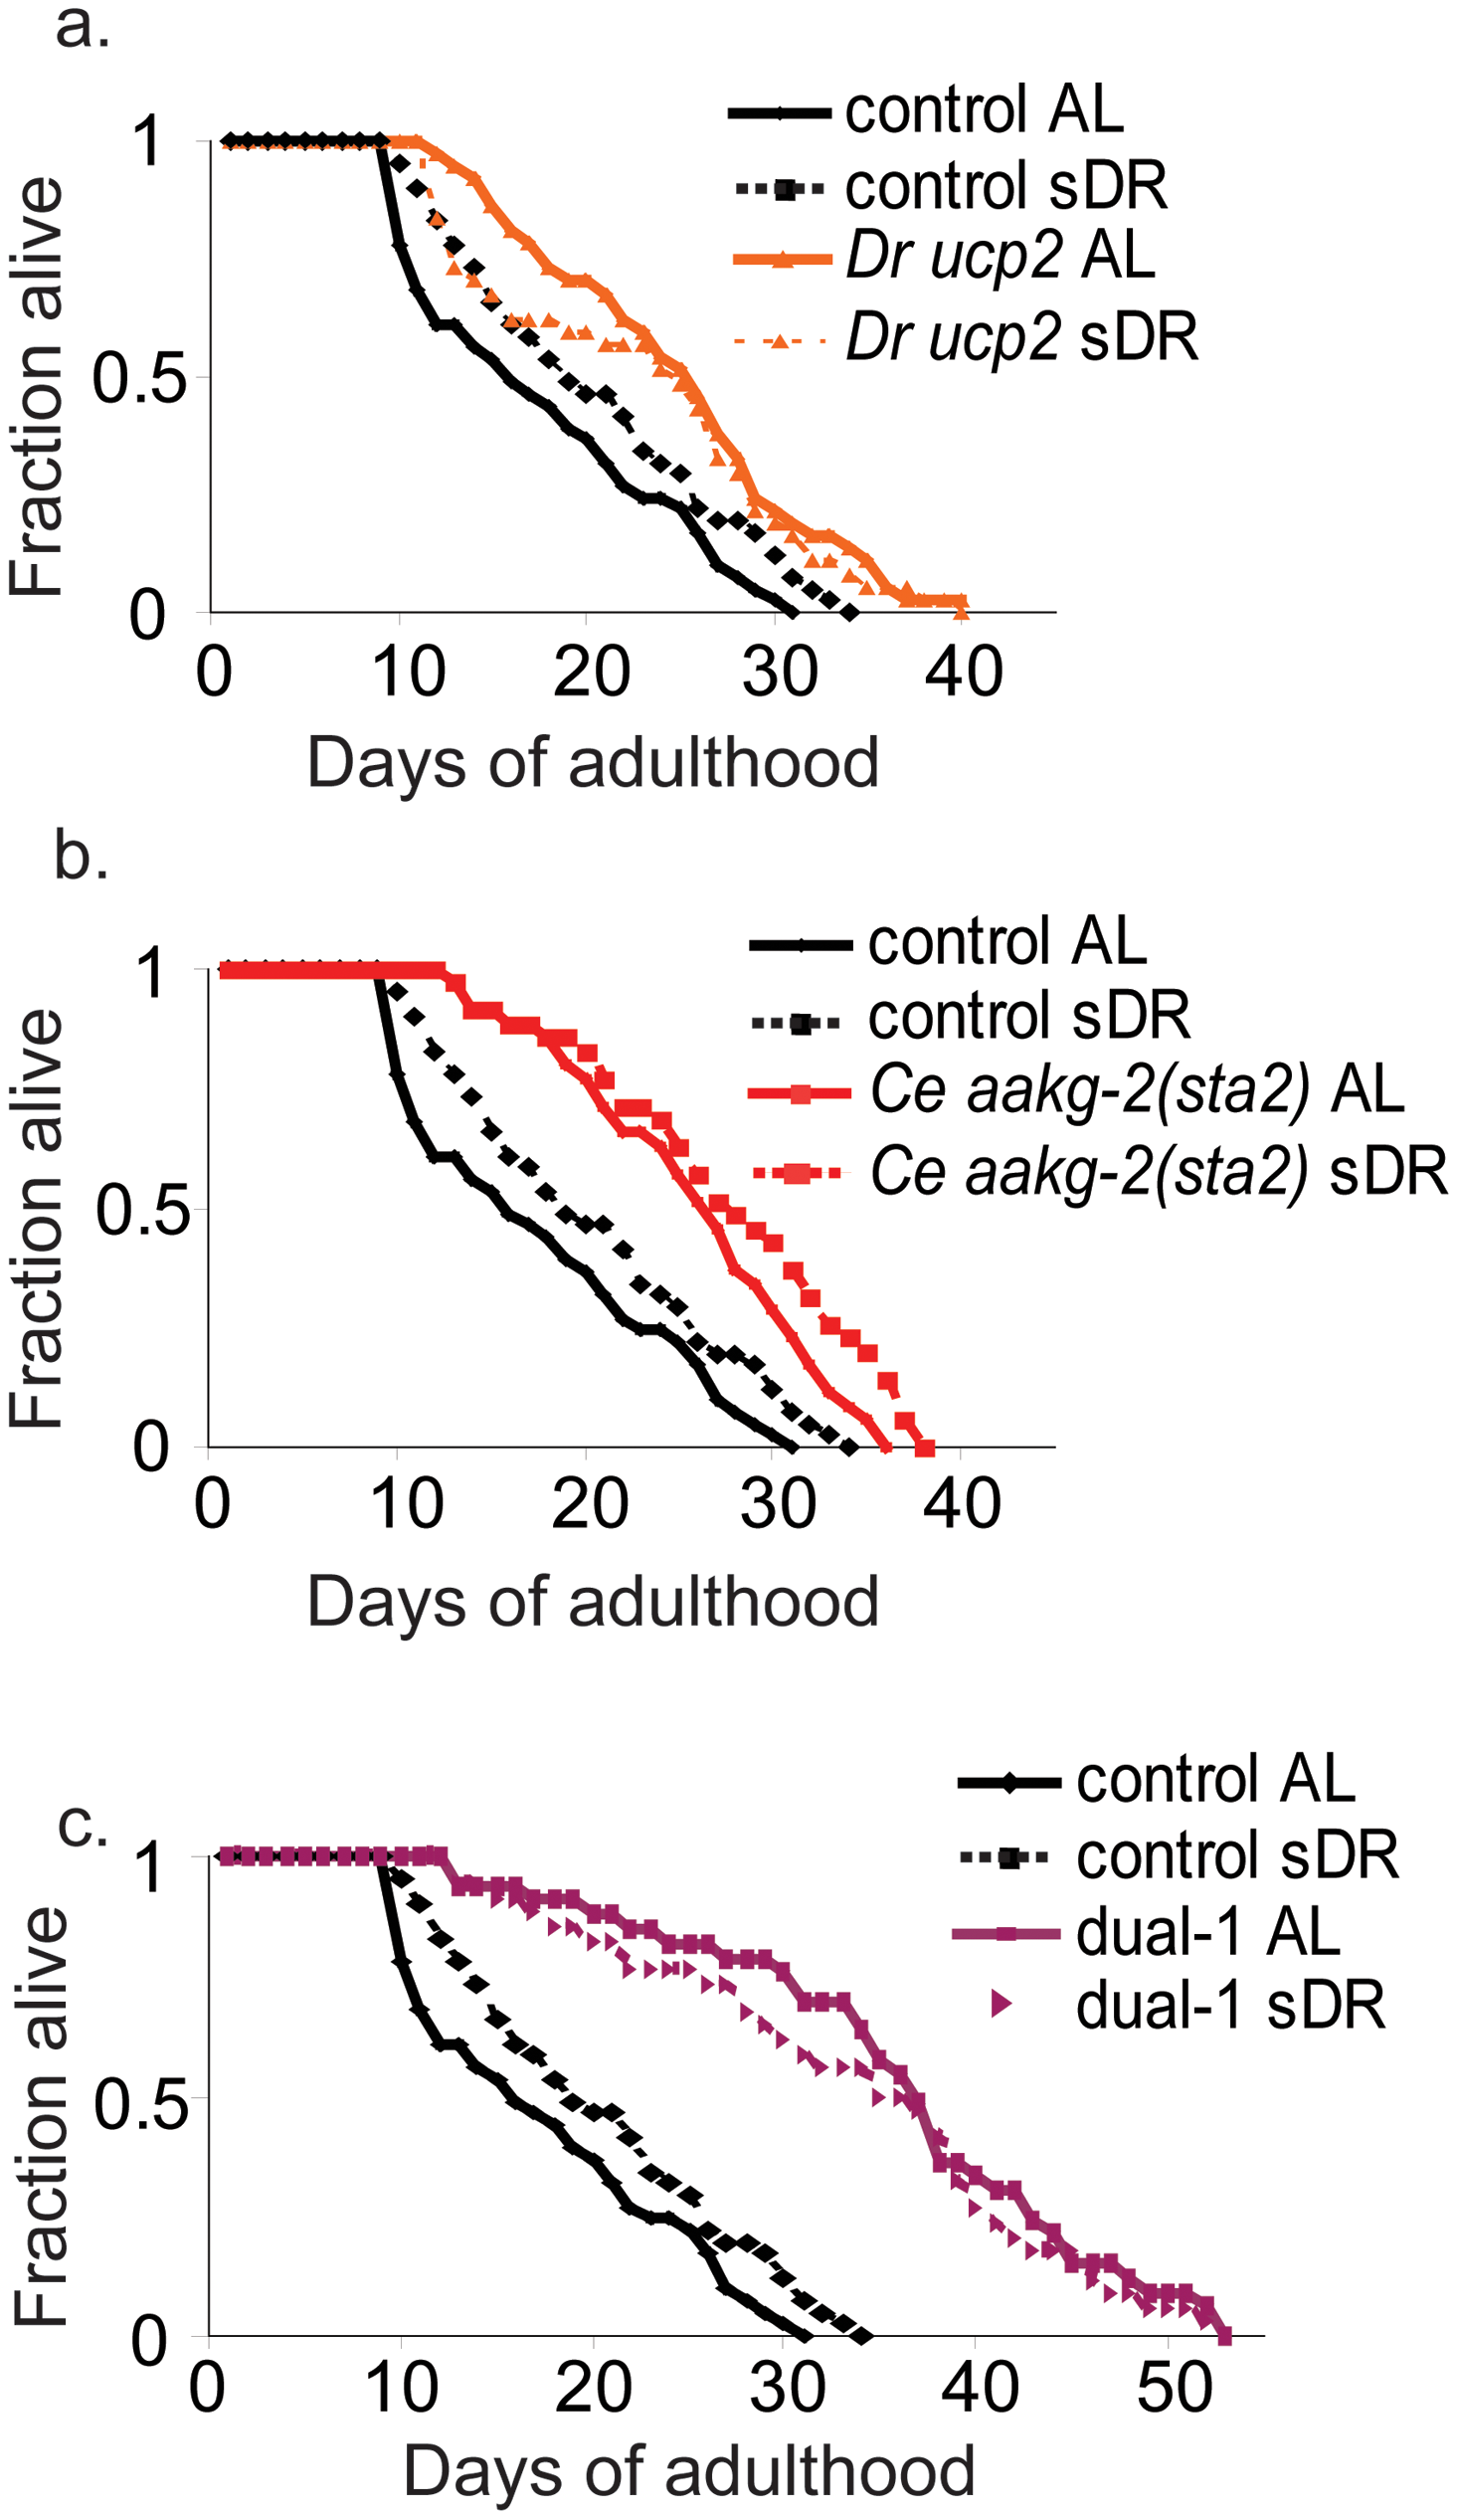 Dietary restriction does not increase lifespan of the <i>D. rerio ucp2</i>, <i>C. elegans aakg-2(sta2)</i>, or Dual-1 strains.